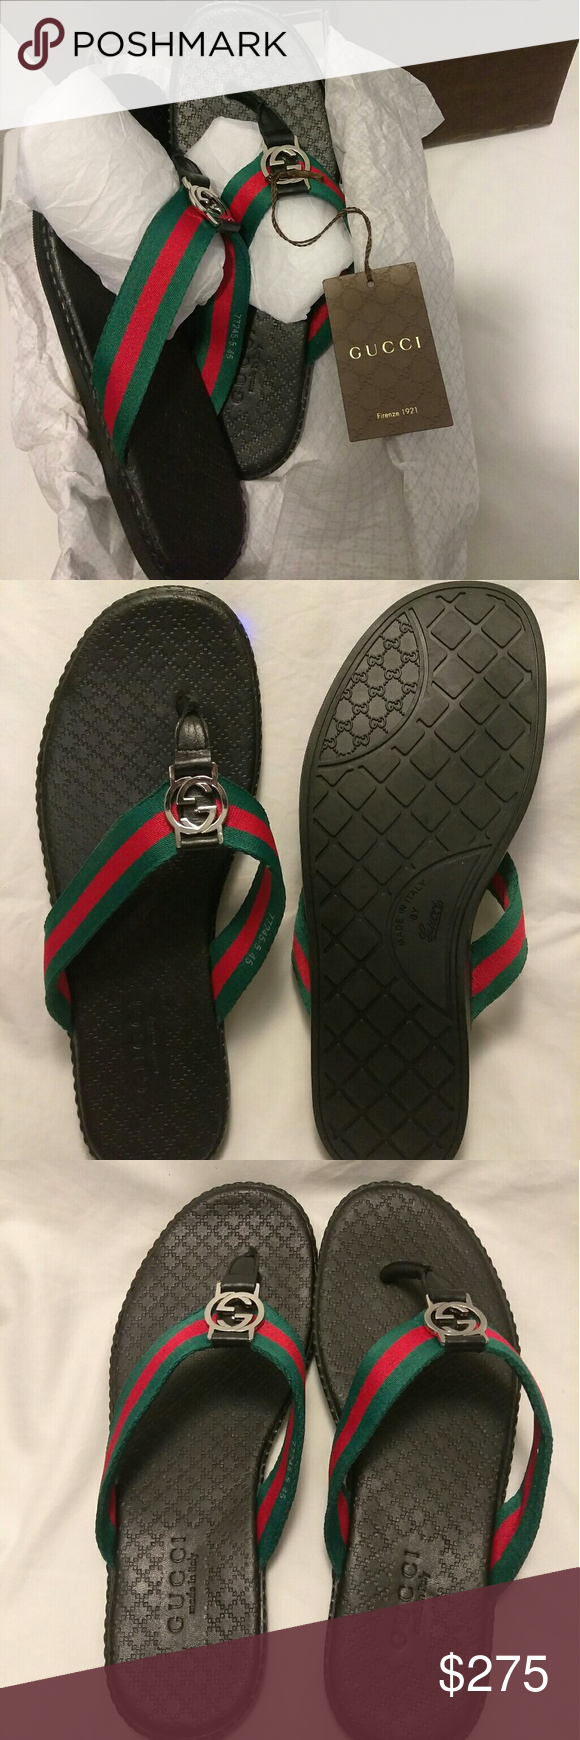 5f2c2867530 Gucci Men Sandals size 12 Brand New